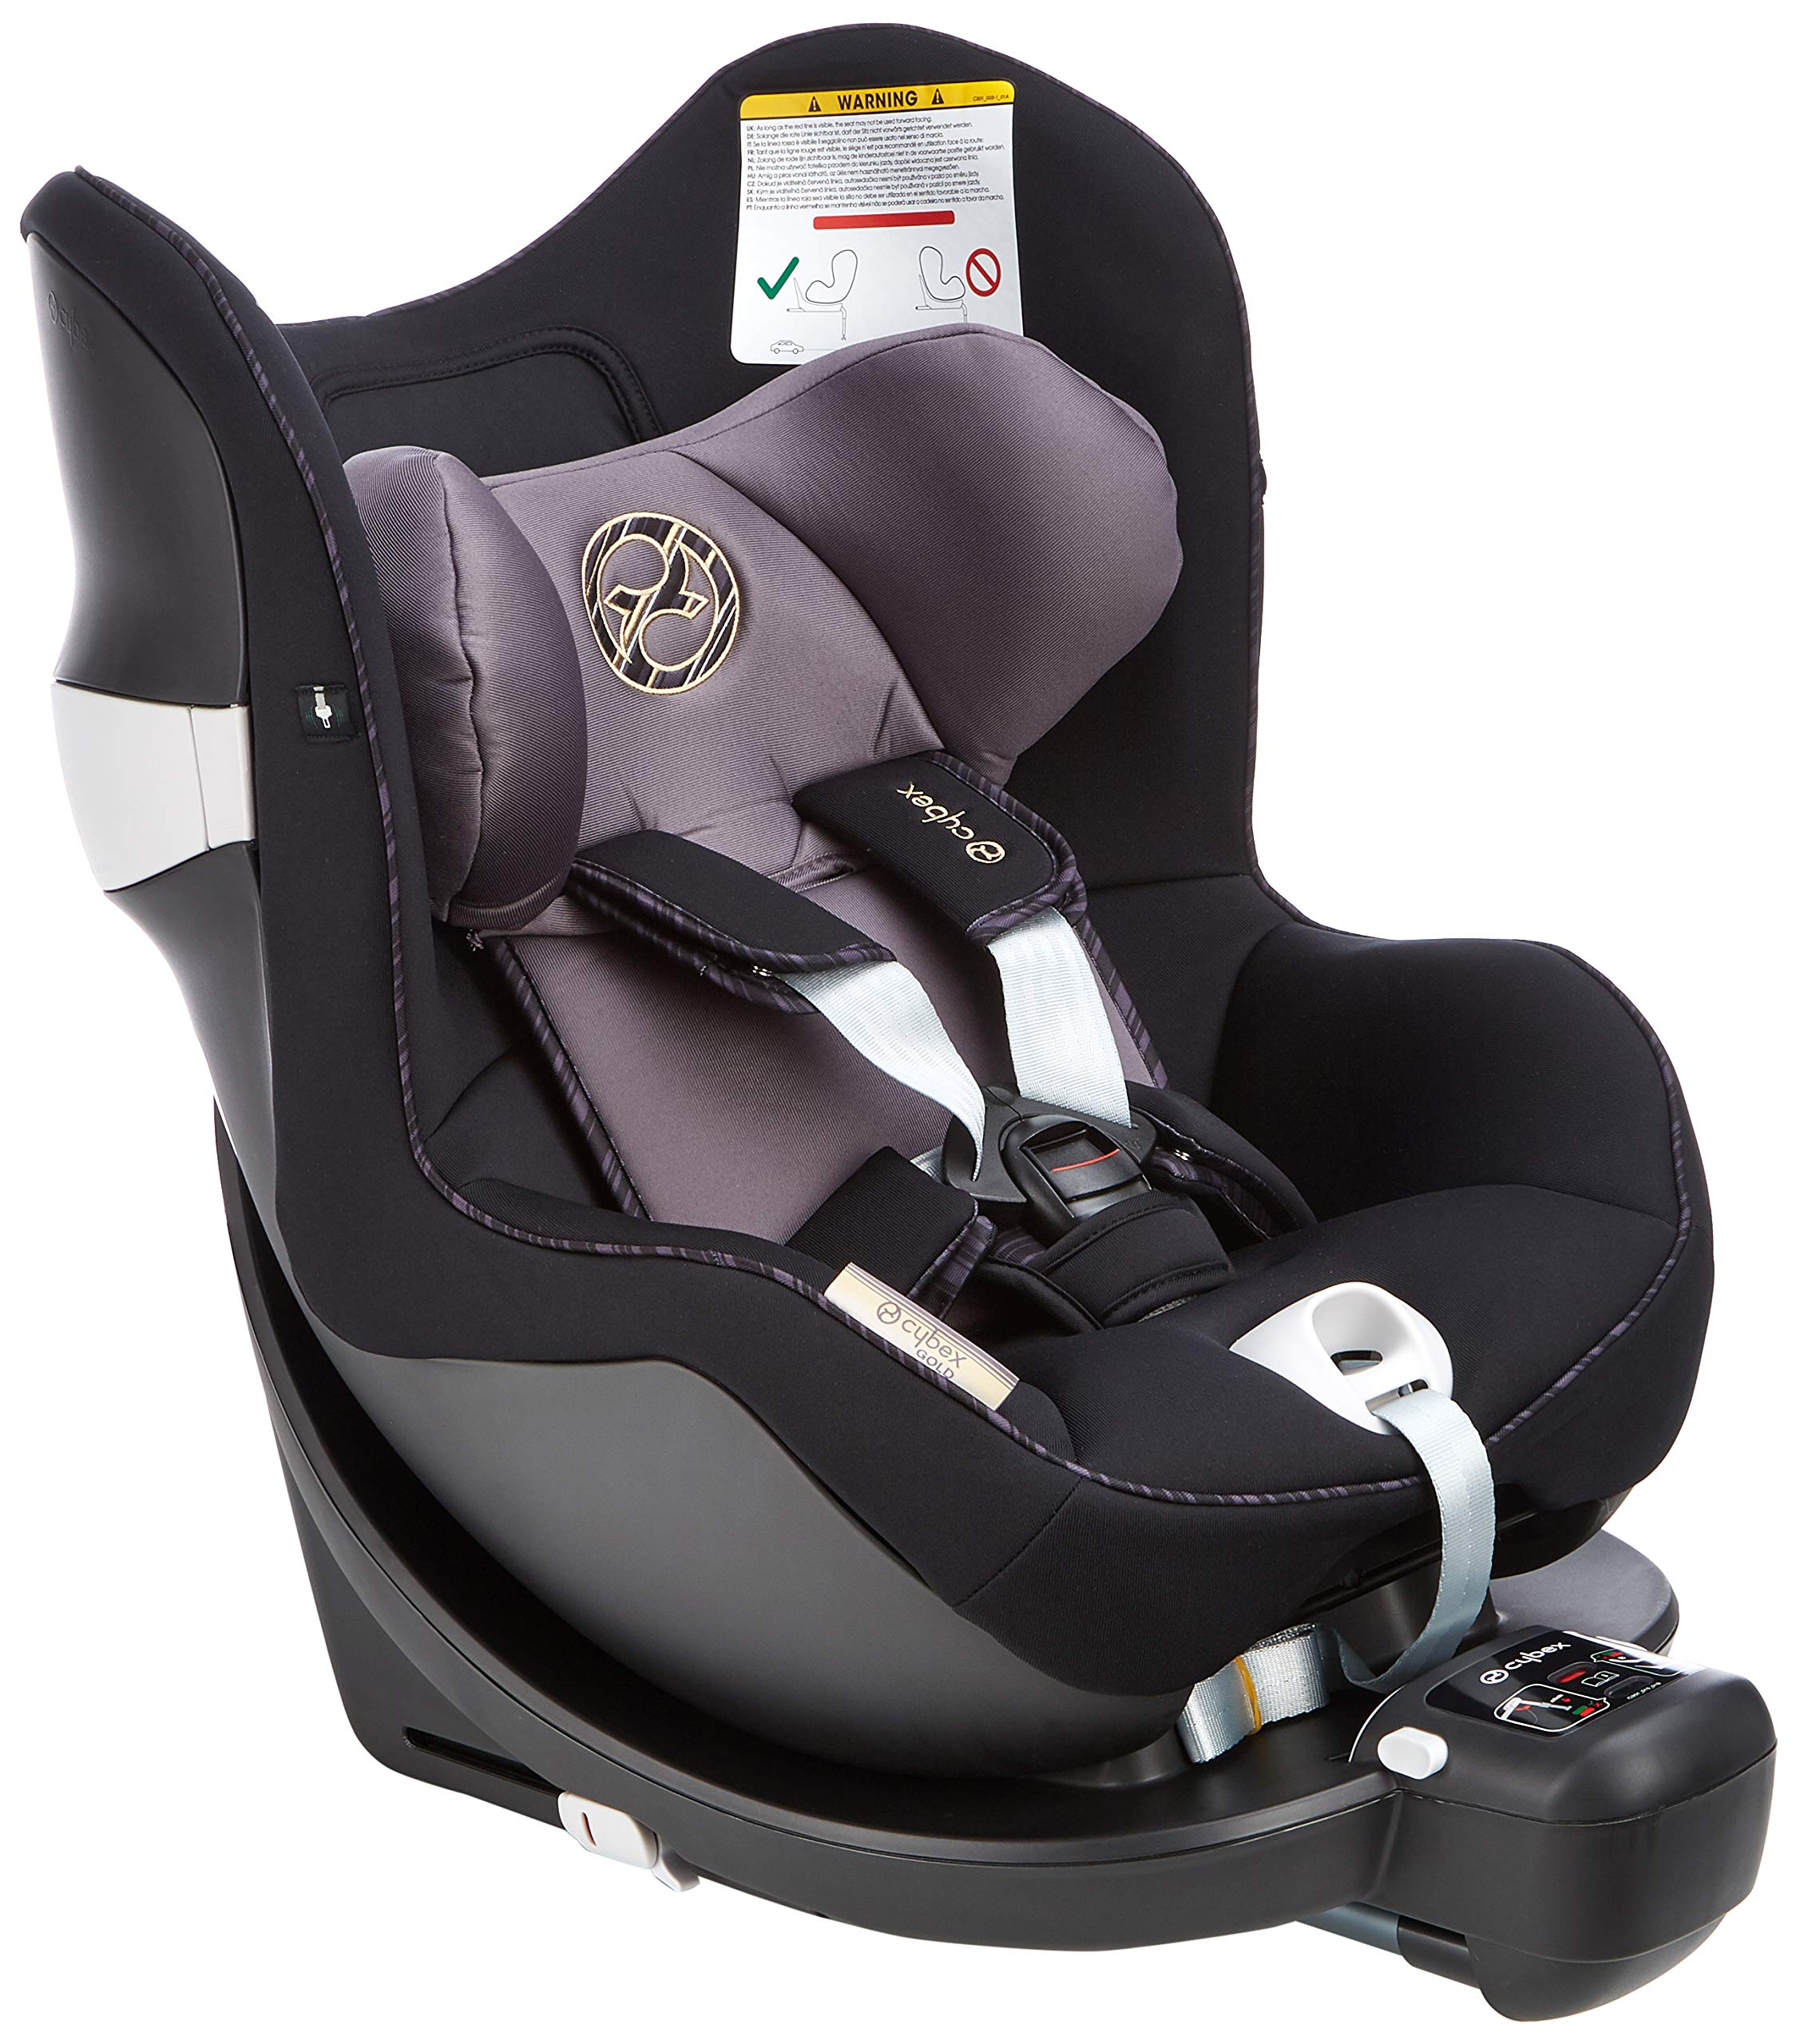 CYBEX Gold Sirona M2 i-Size Car Seat, Incl. Base M, From Birth to approx. 4 years, Up to Max. 105 cm Height, Premium Black  Cybex gold car seat sirona m2 i-size incl. base m Colour: premium black Item number: 519000959 2